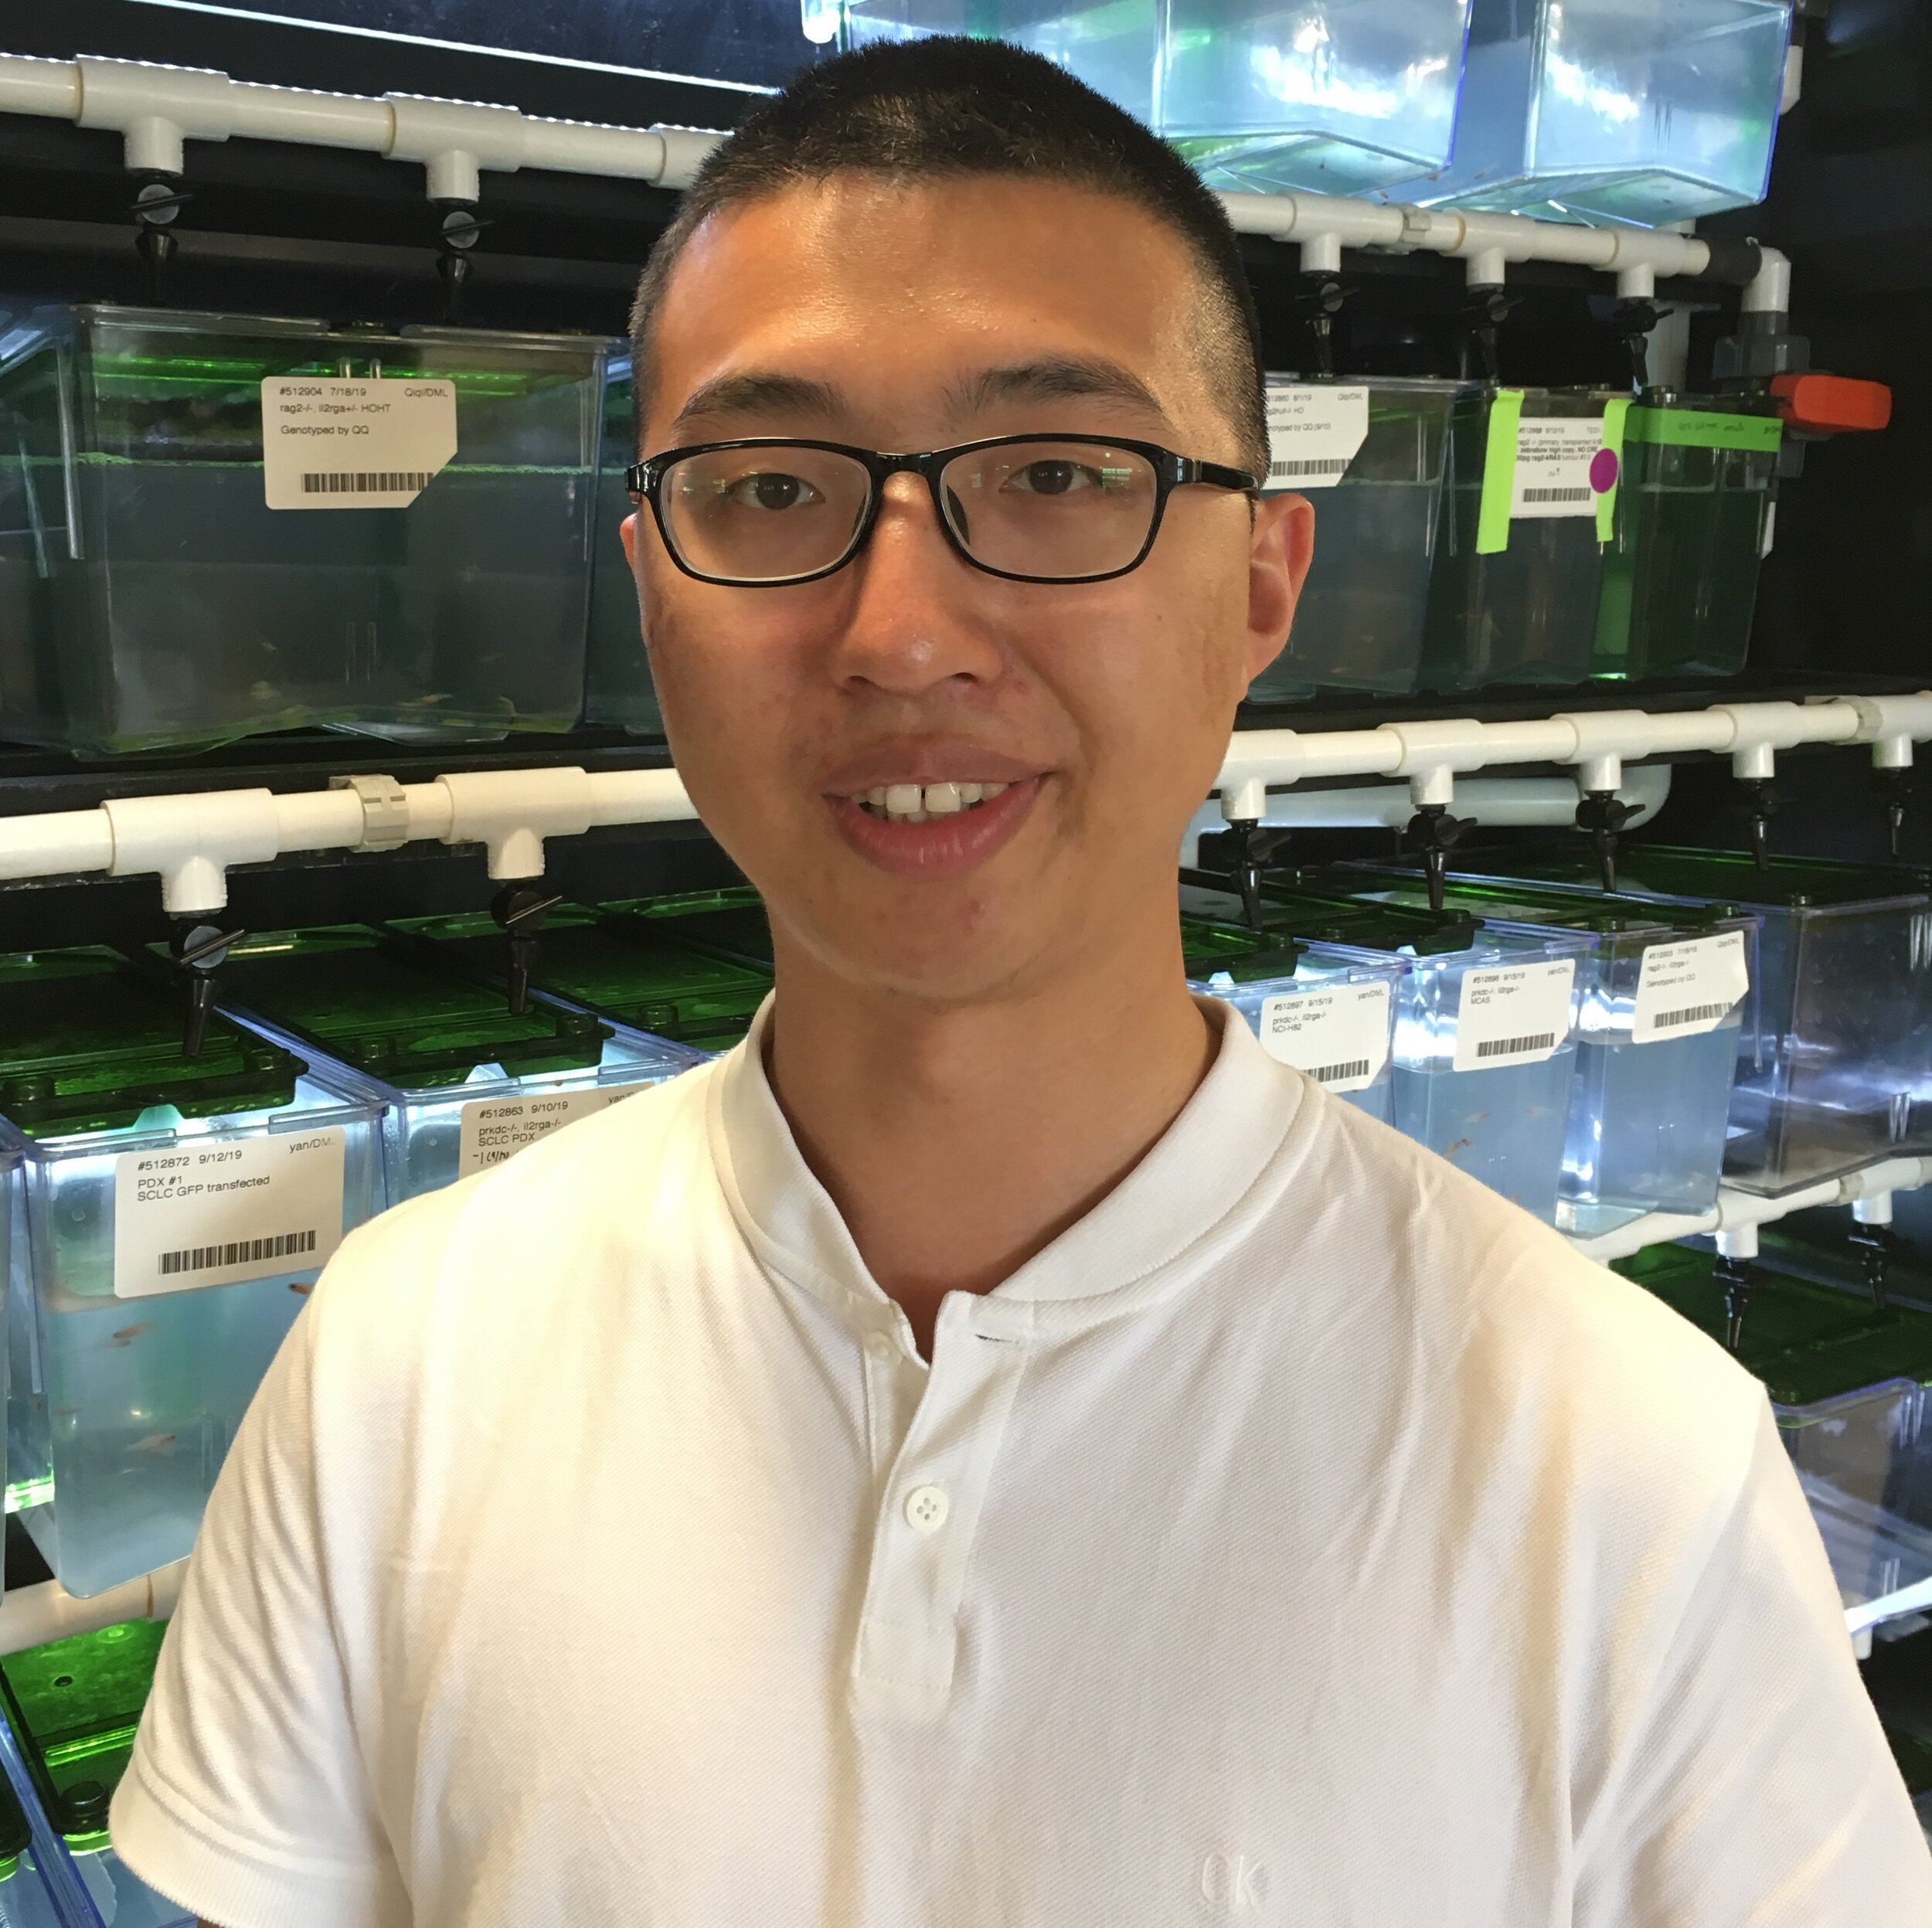 Qian (Alvin) Qin   Alvin is from Shanghai, China, and he graduated from Tongji University in 2017 with a Ph.D. in Bioinformatics, especially for epigenomics study. He is now a postdoc research fellow co-mentored by Professor David Langenau and Professor Luca Pinello. Before he joined the lab, he was an assistant researcher at Children's Hospital of Fudan University, where he integrated multi-modal MRI datasets for neonatal encephalopathy diagnosis with deep learning. His current interest lies in single-cell data integration across species and samples to construct the gene regulatory network and detect functional cis-elements underlying the mechanisms of oncogenesis and development, and potentially single cell microscopy images analysis for quantifying cell phenotype. Outside of lab, Alvin enjoys reading, swimming, and working out with his colleagues.